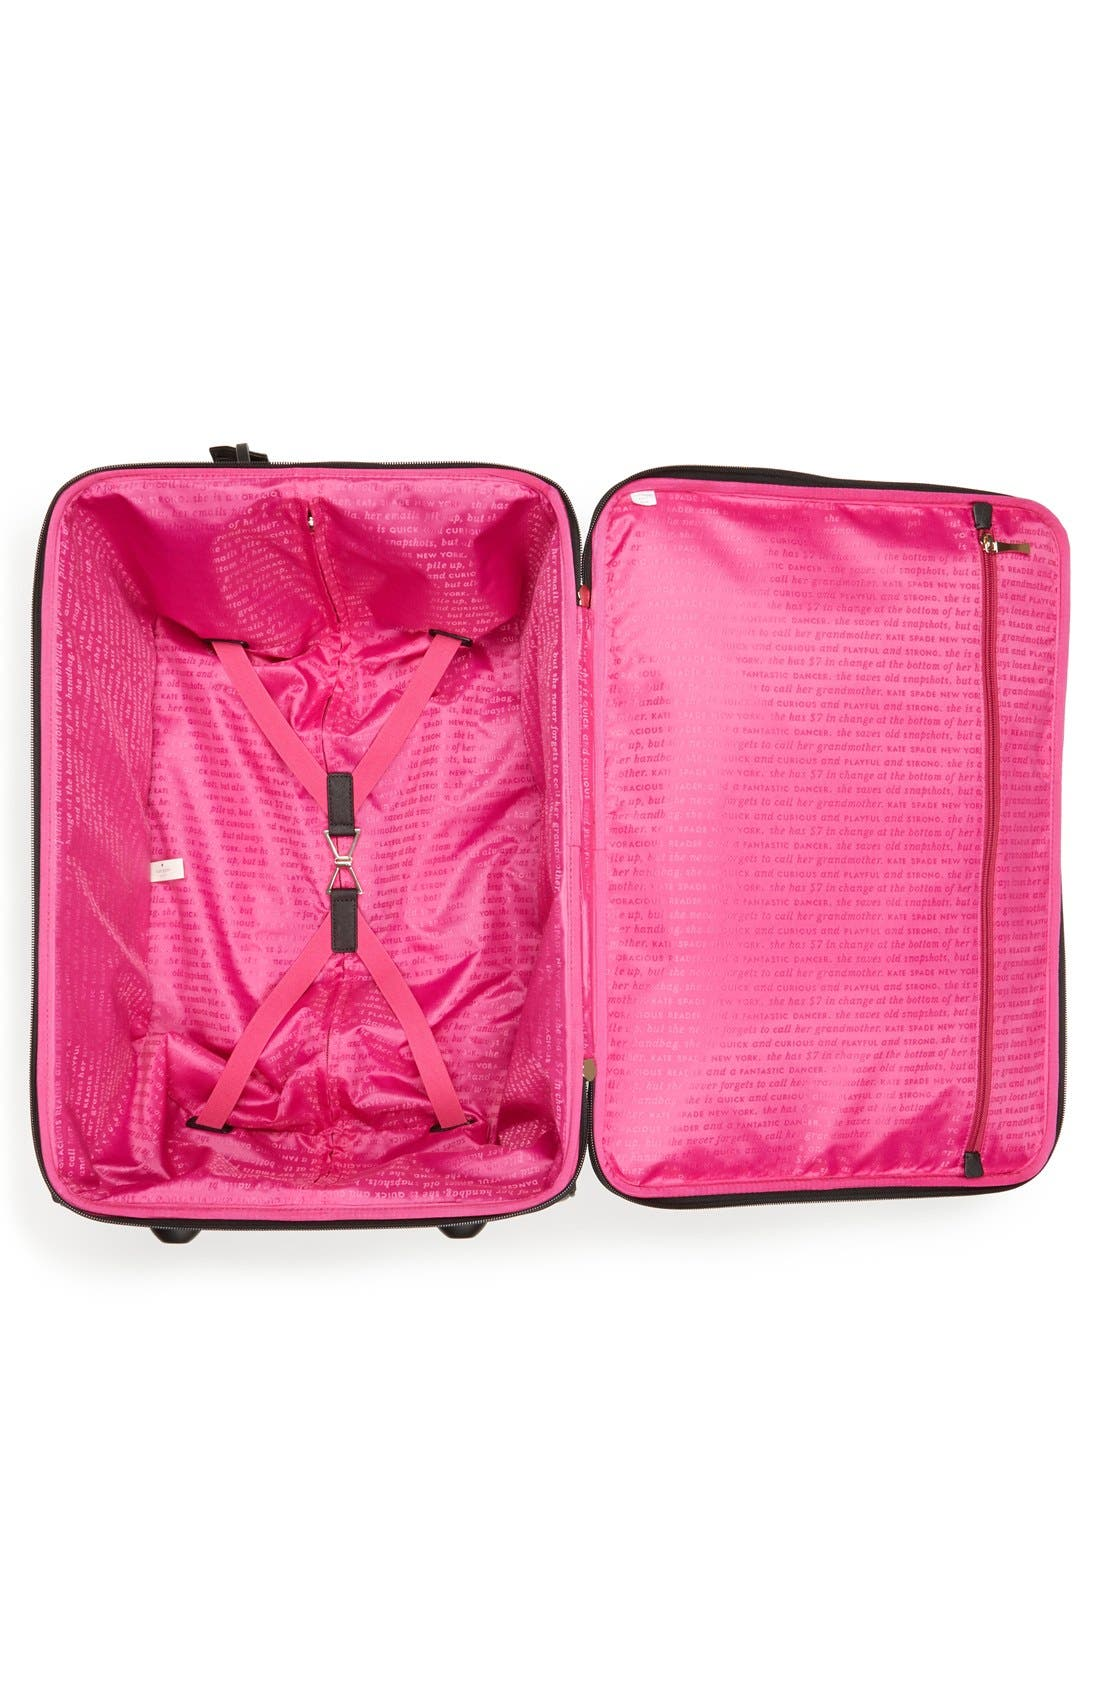 Alternate Image 3  - kate spade new york 'classic' nylon international two-wheel carry-on suitcase (20 Inch)